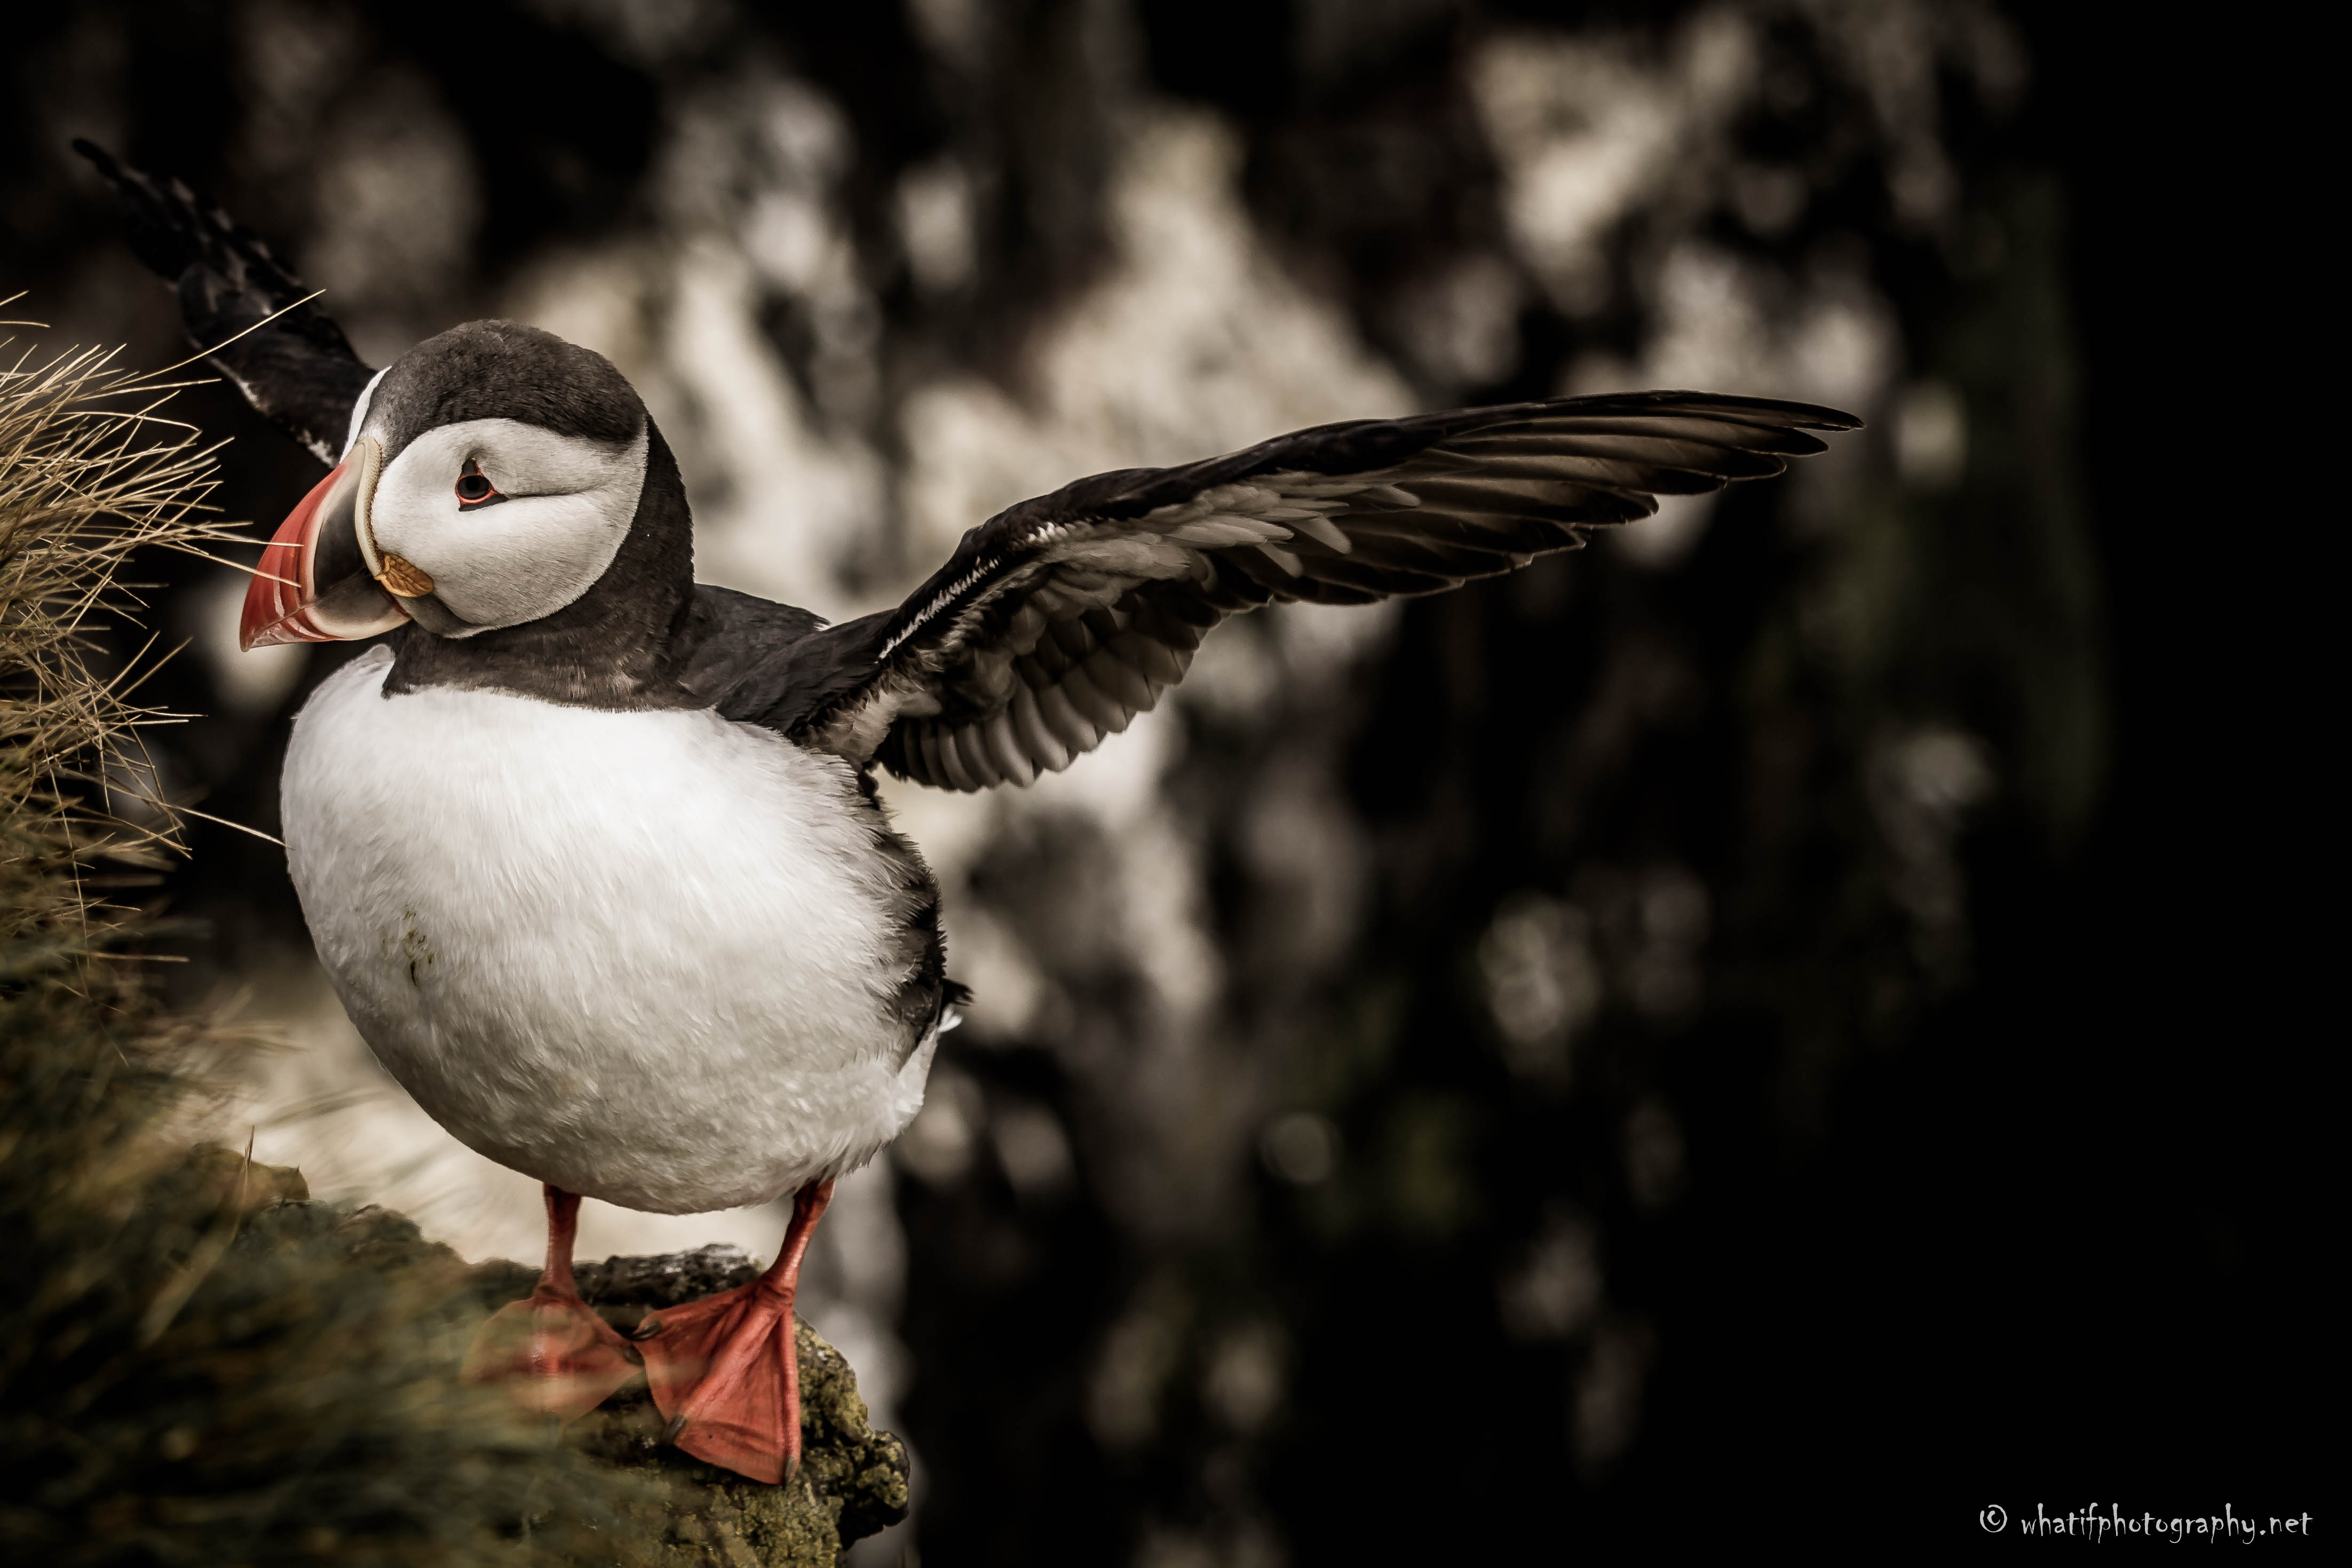 Puffin arriving at Latrabjarg Cliffs, Ic